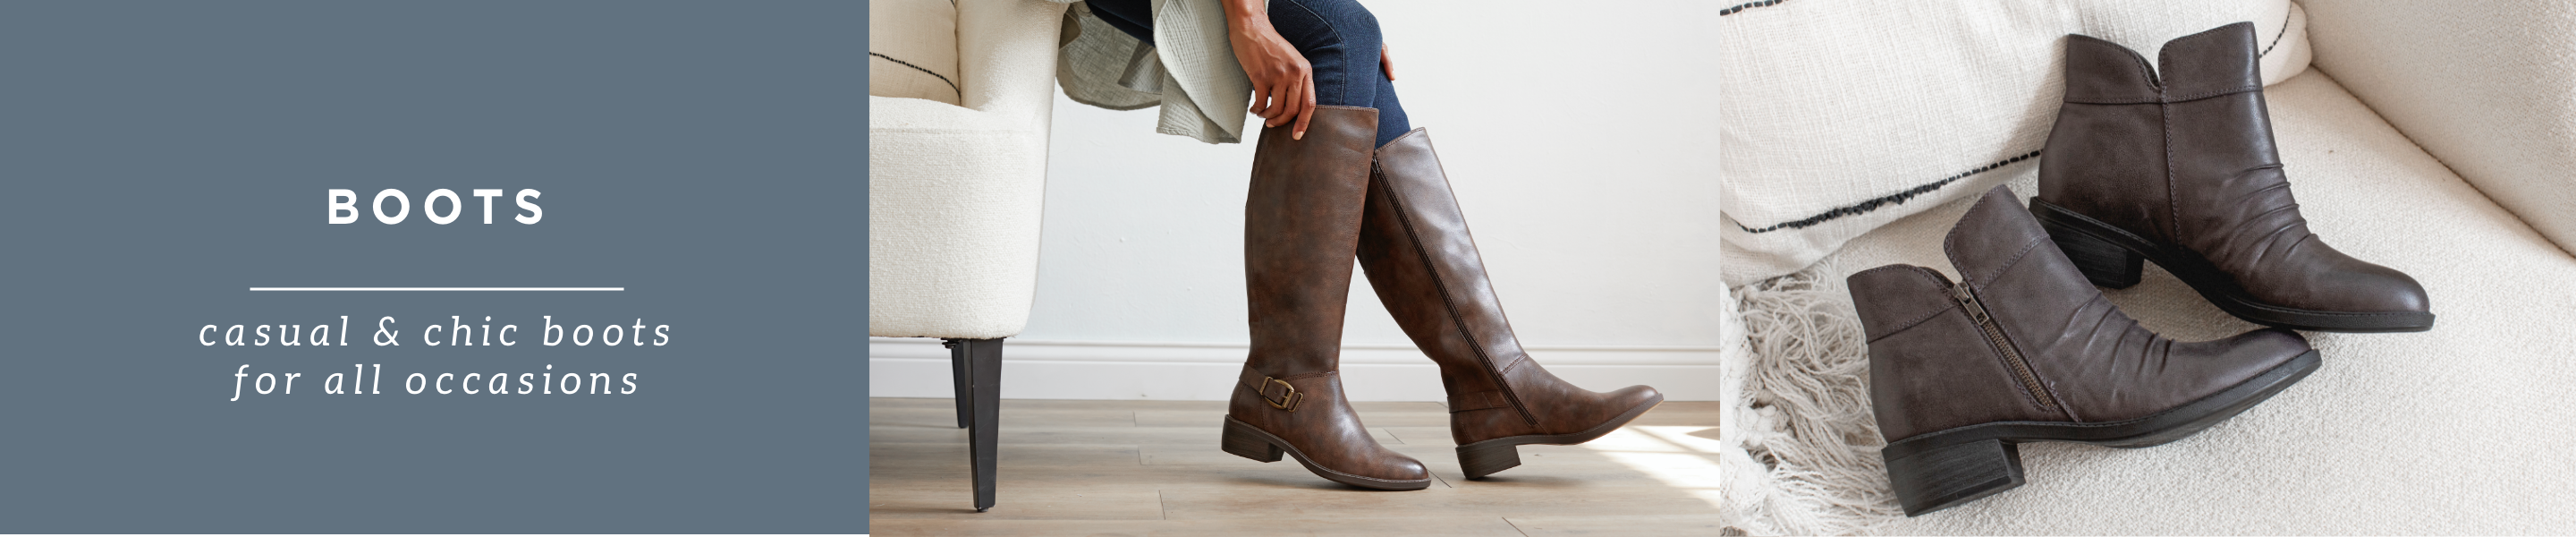 boots-web-1280-4.png